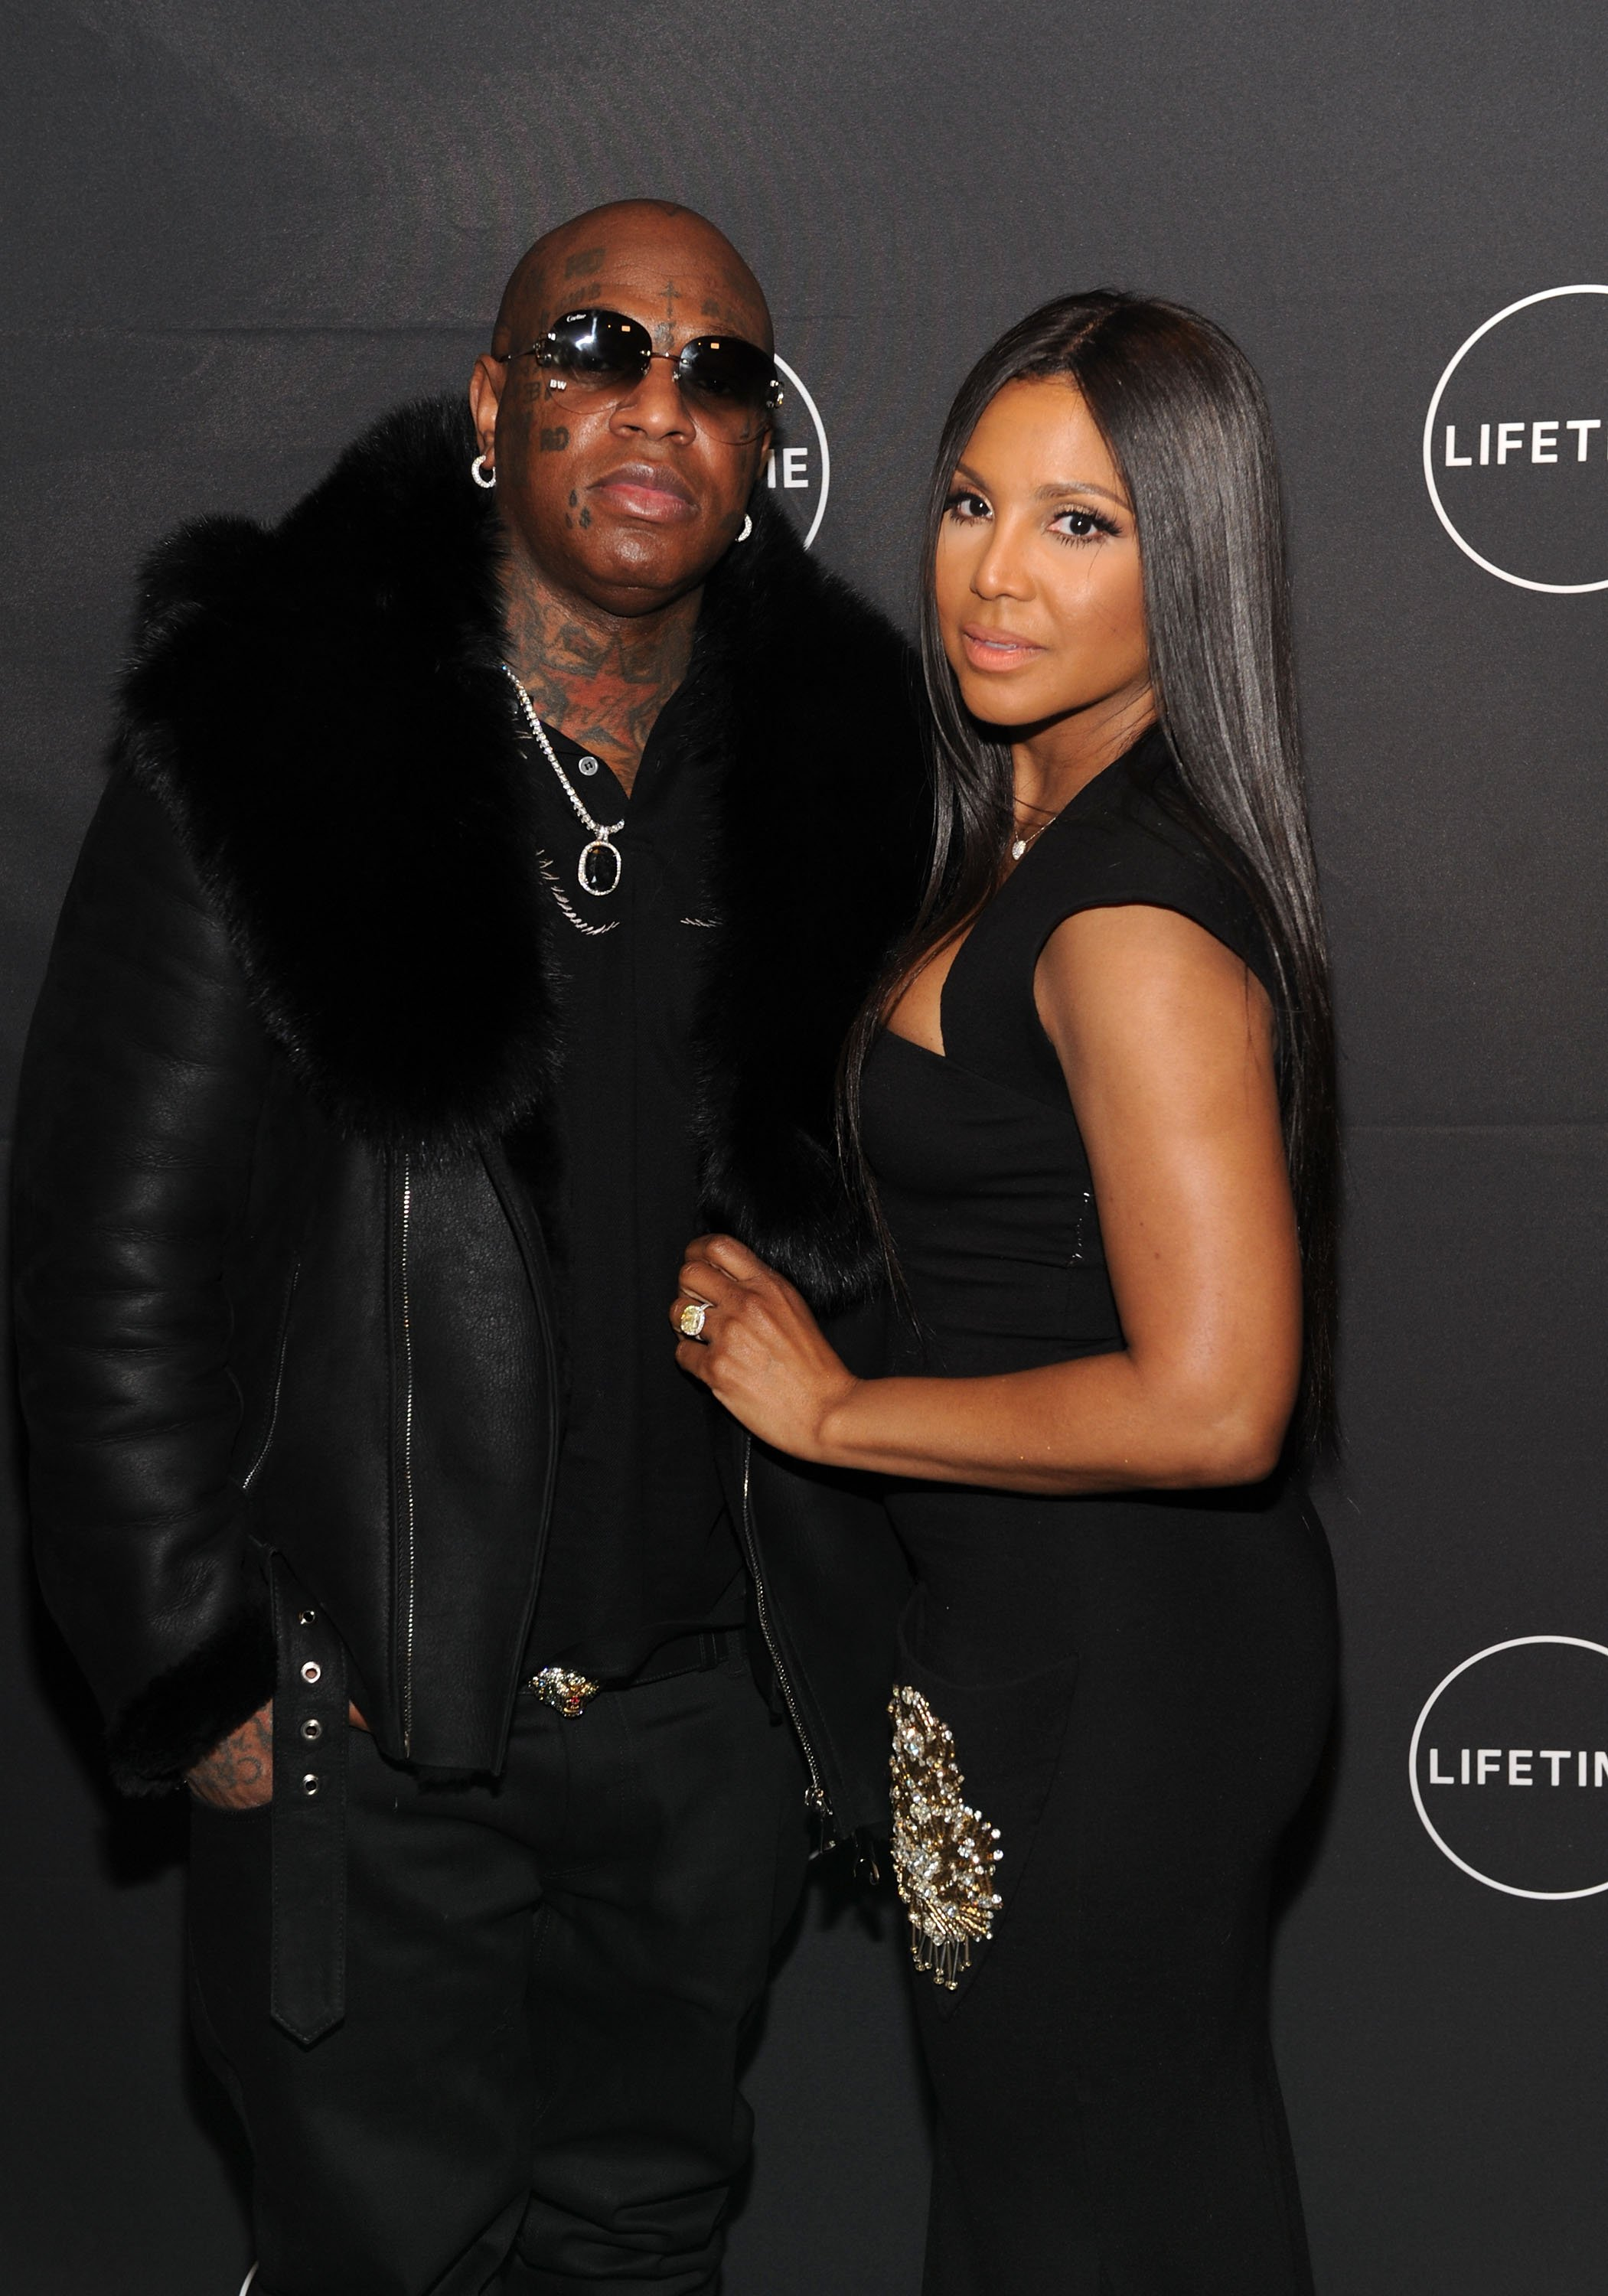 Birdman and Toni Braxton at Lifetime's Film,'Faith Under Fire: The Antoinette Tuff Story' red carpet screening and premiere event at NeueHouse Madison Square In New York, NY on January 23, 2018. | Source: Getty